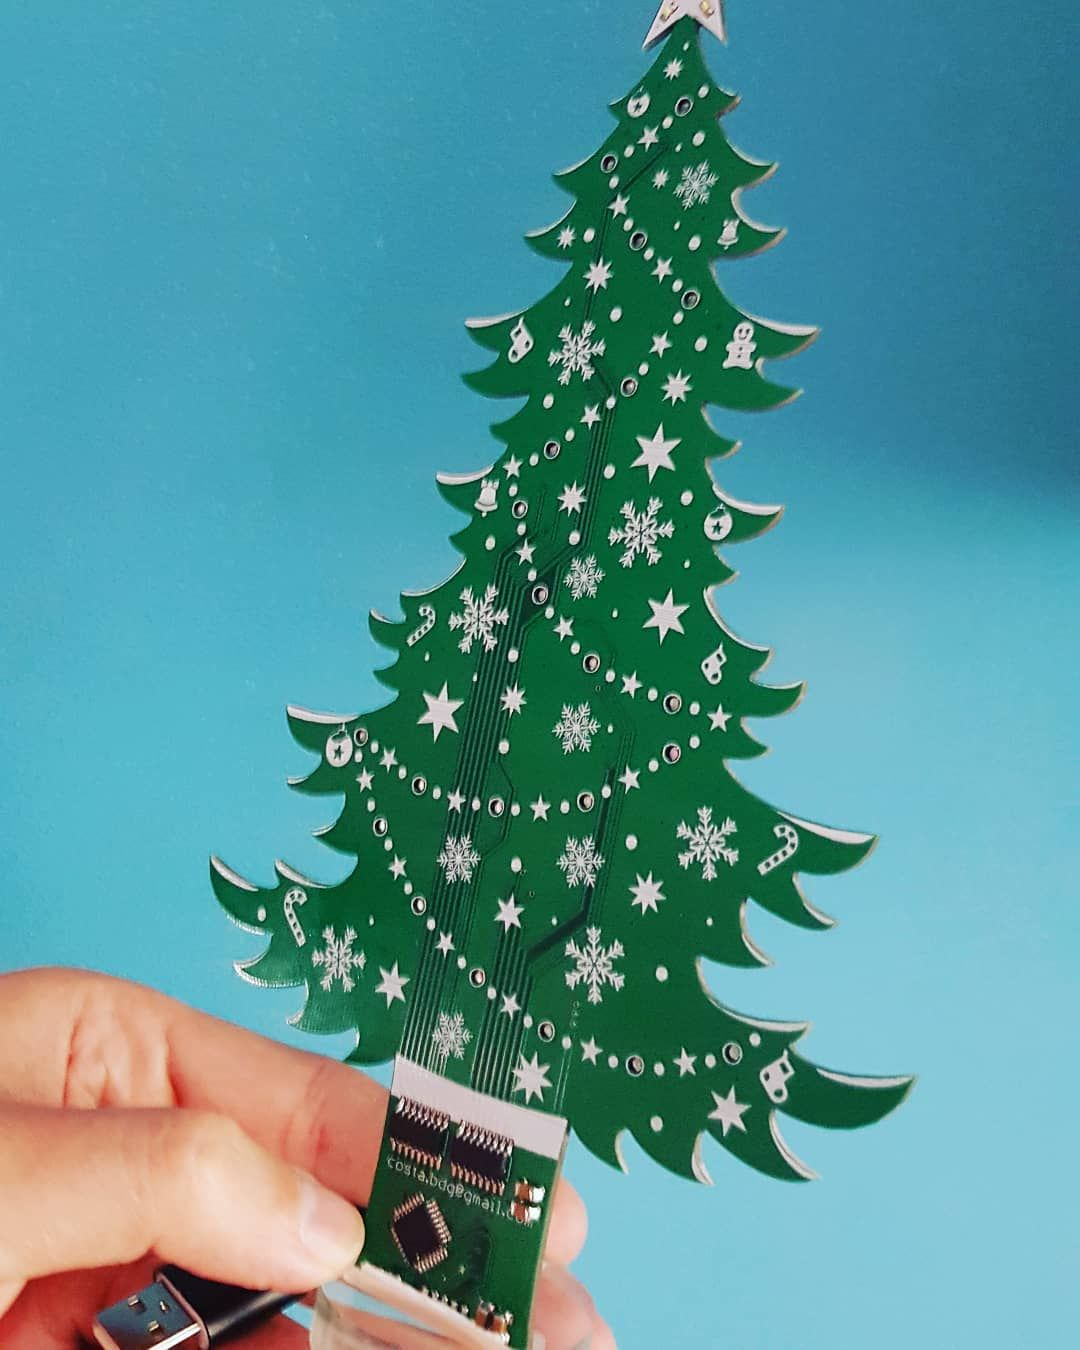 Avr Christmas Tree Led Electronicsprojects Electronic Avrproject Engineering L Knitting Patterns Free Beginner Knitting Projects Knitting For Beginners